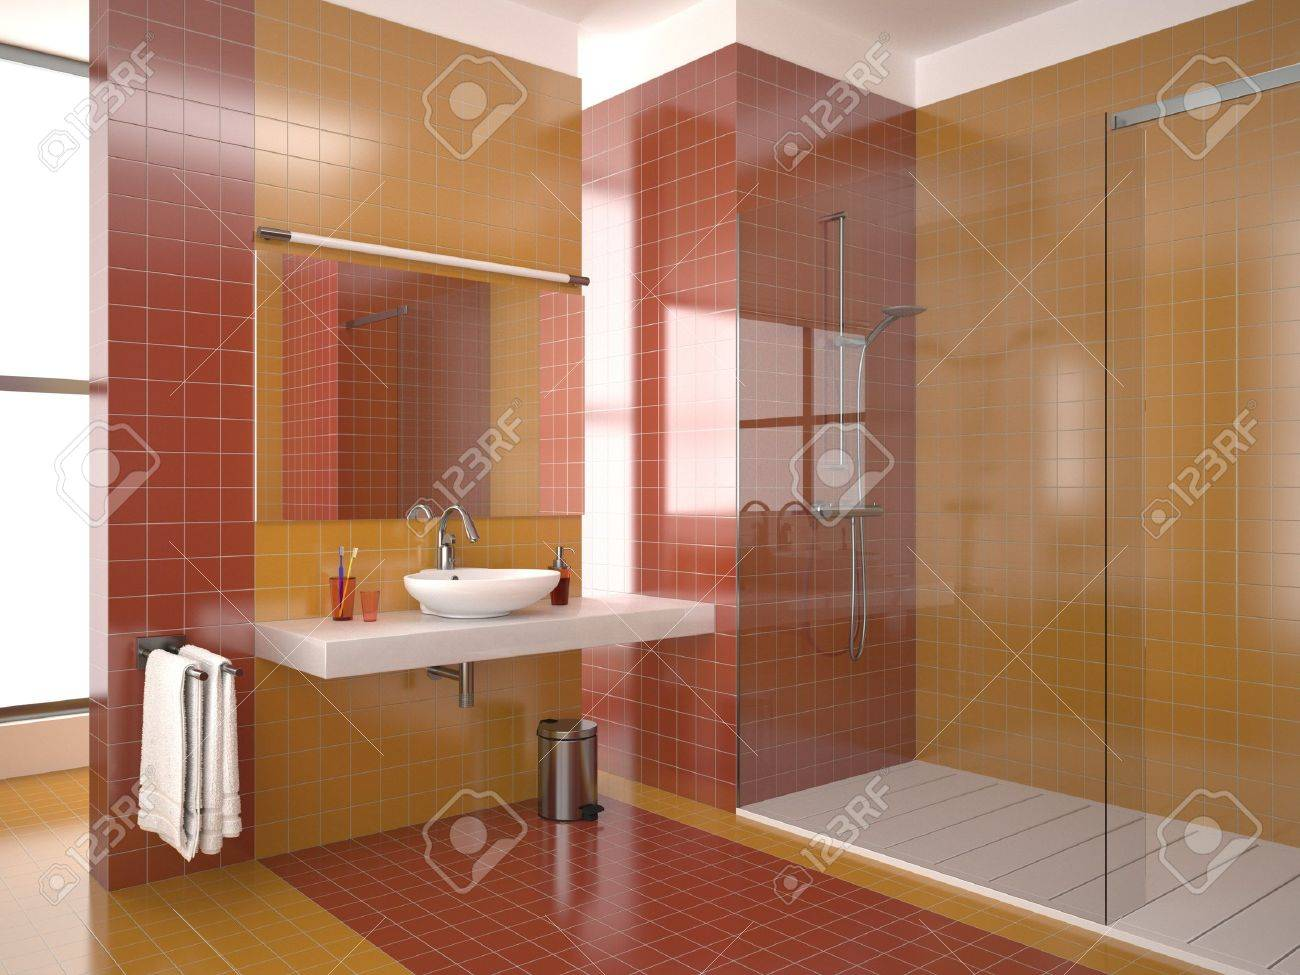 modern bathroom with red and orange tiles Stock Photo - 8503763